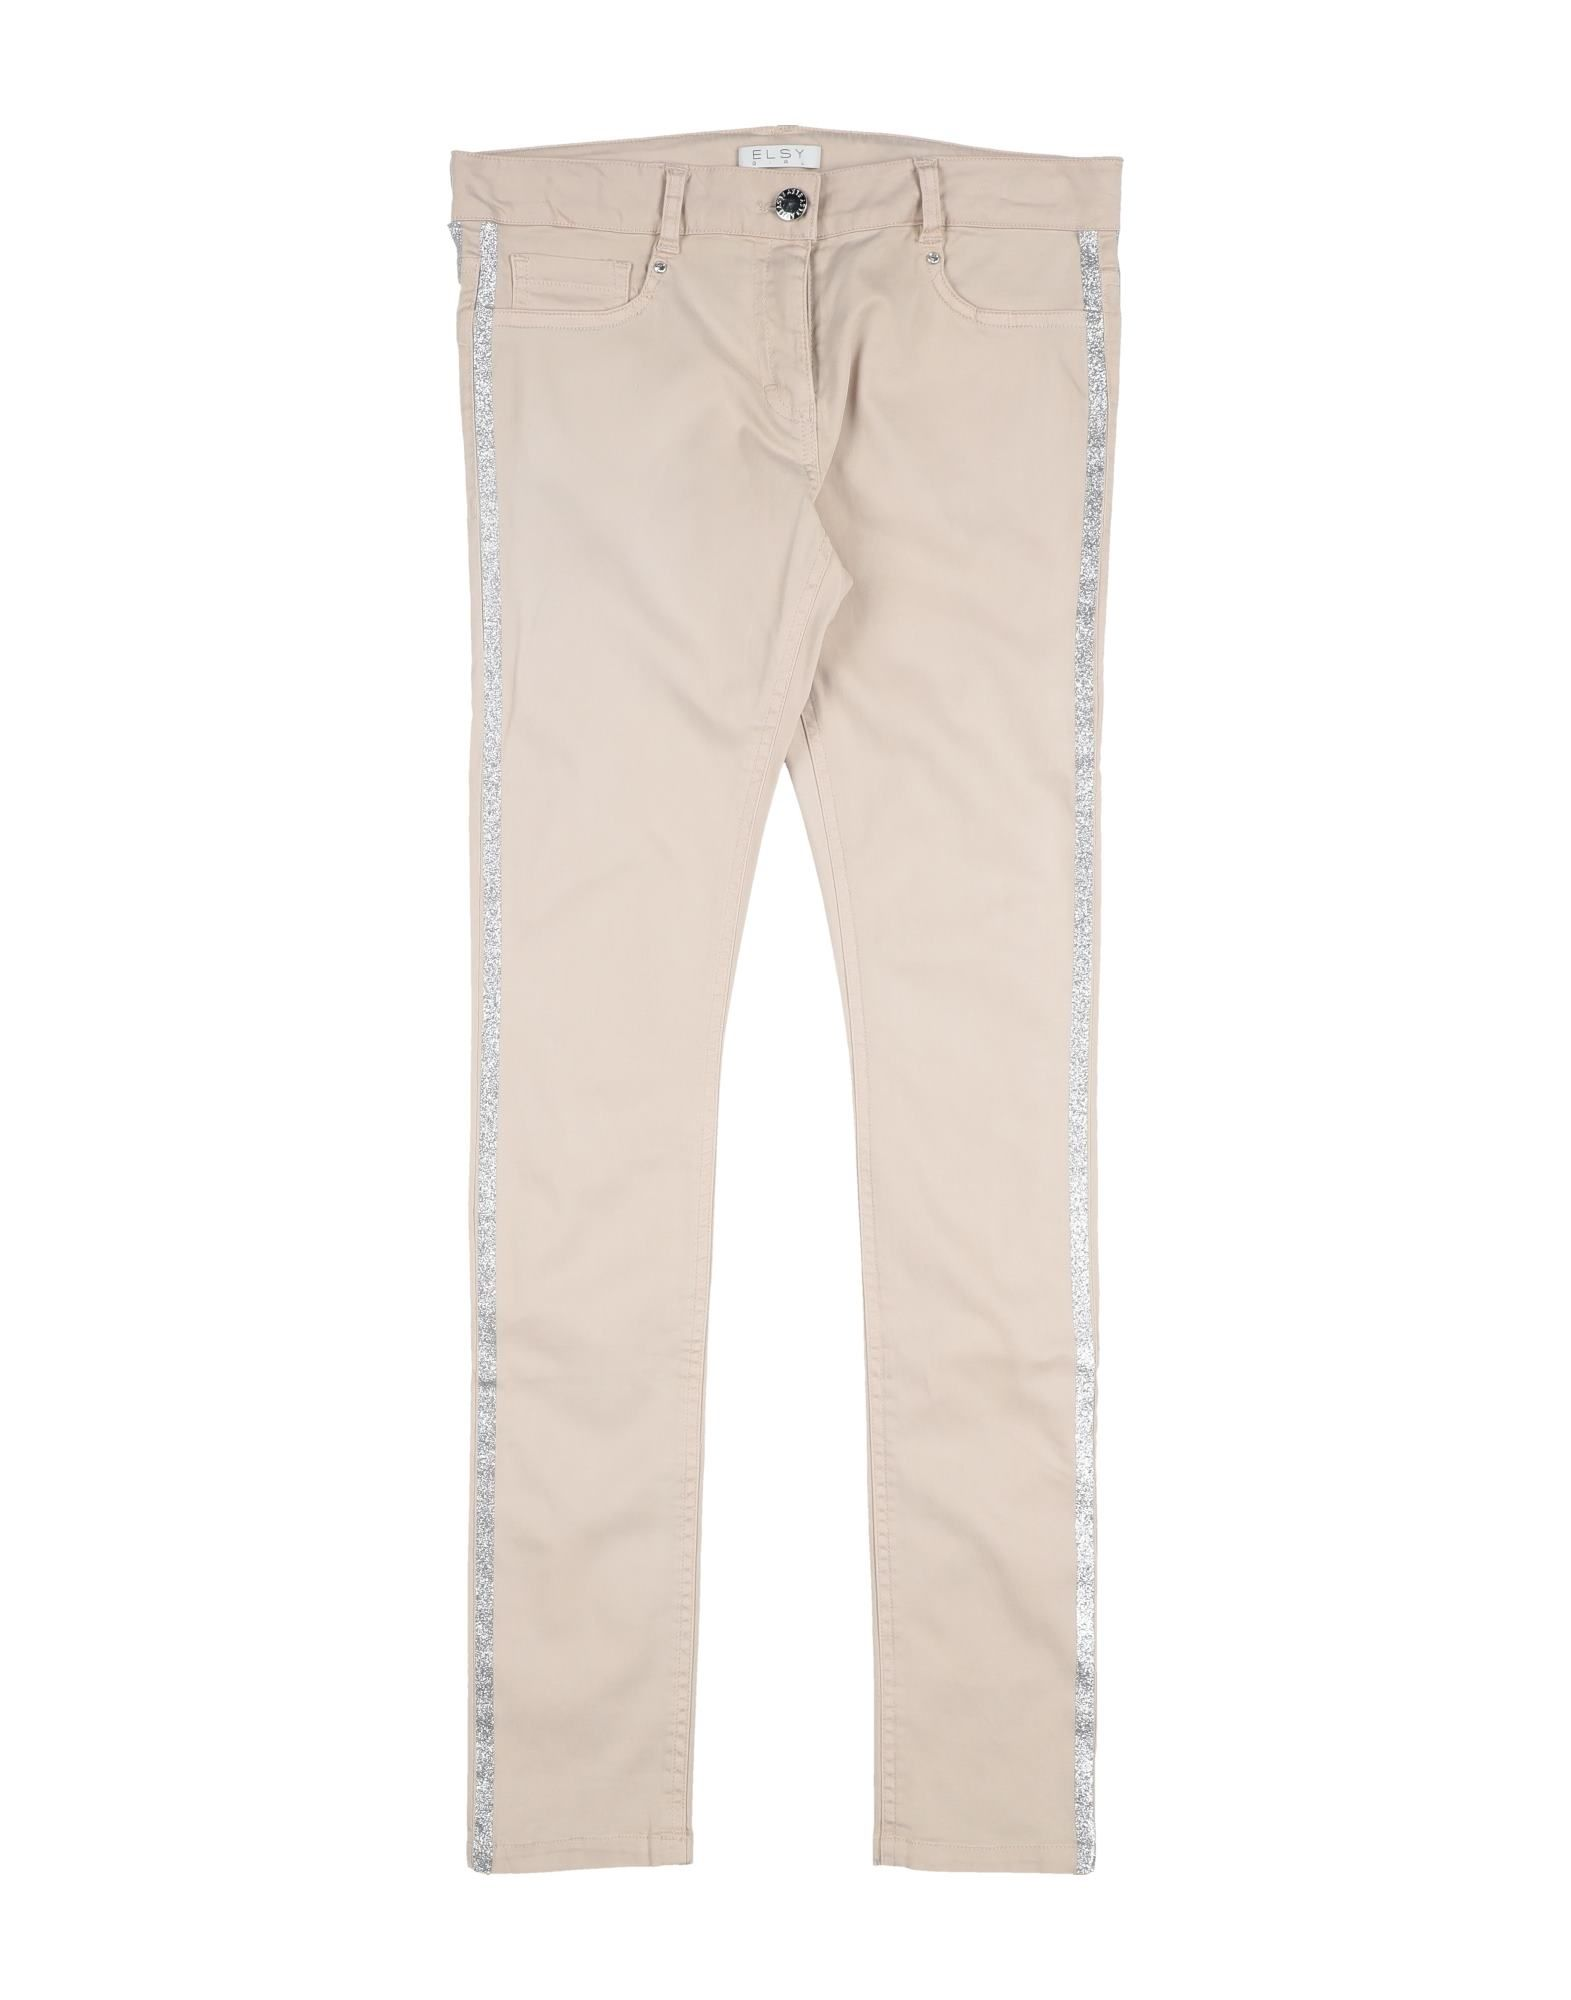 Elsy Kids' Casual Pants In Neutrals